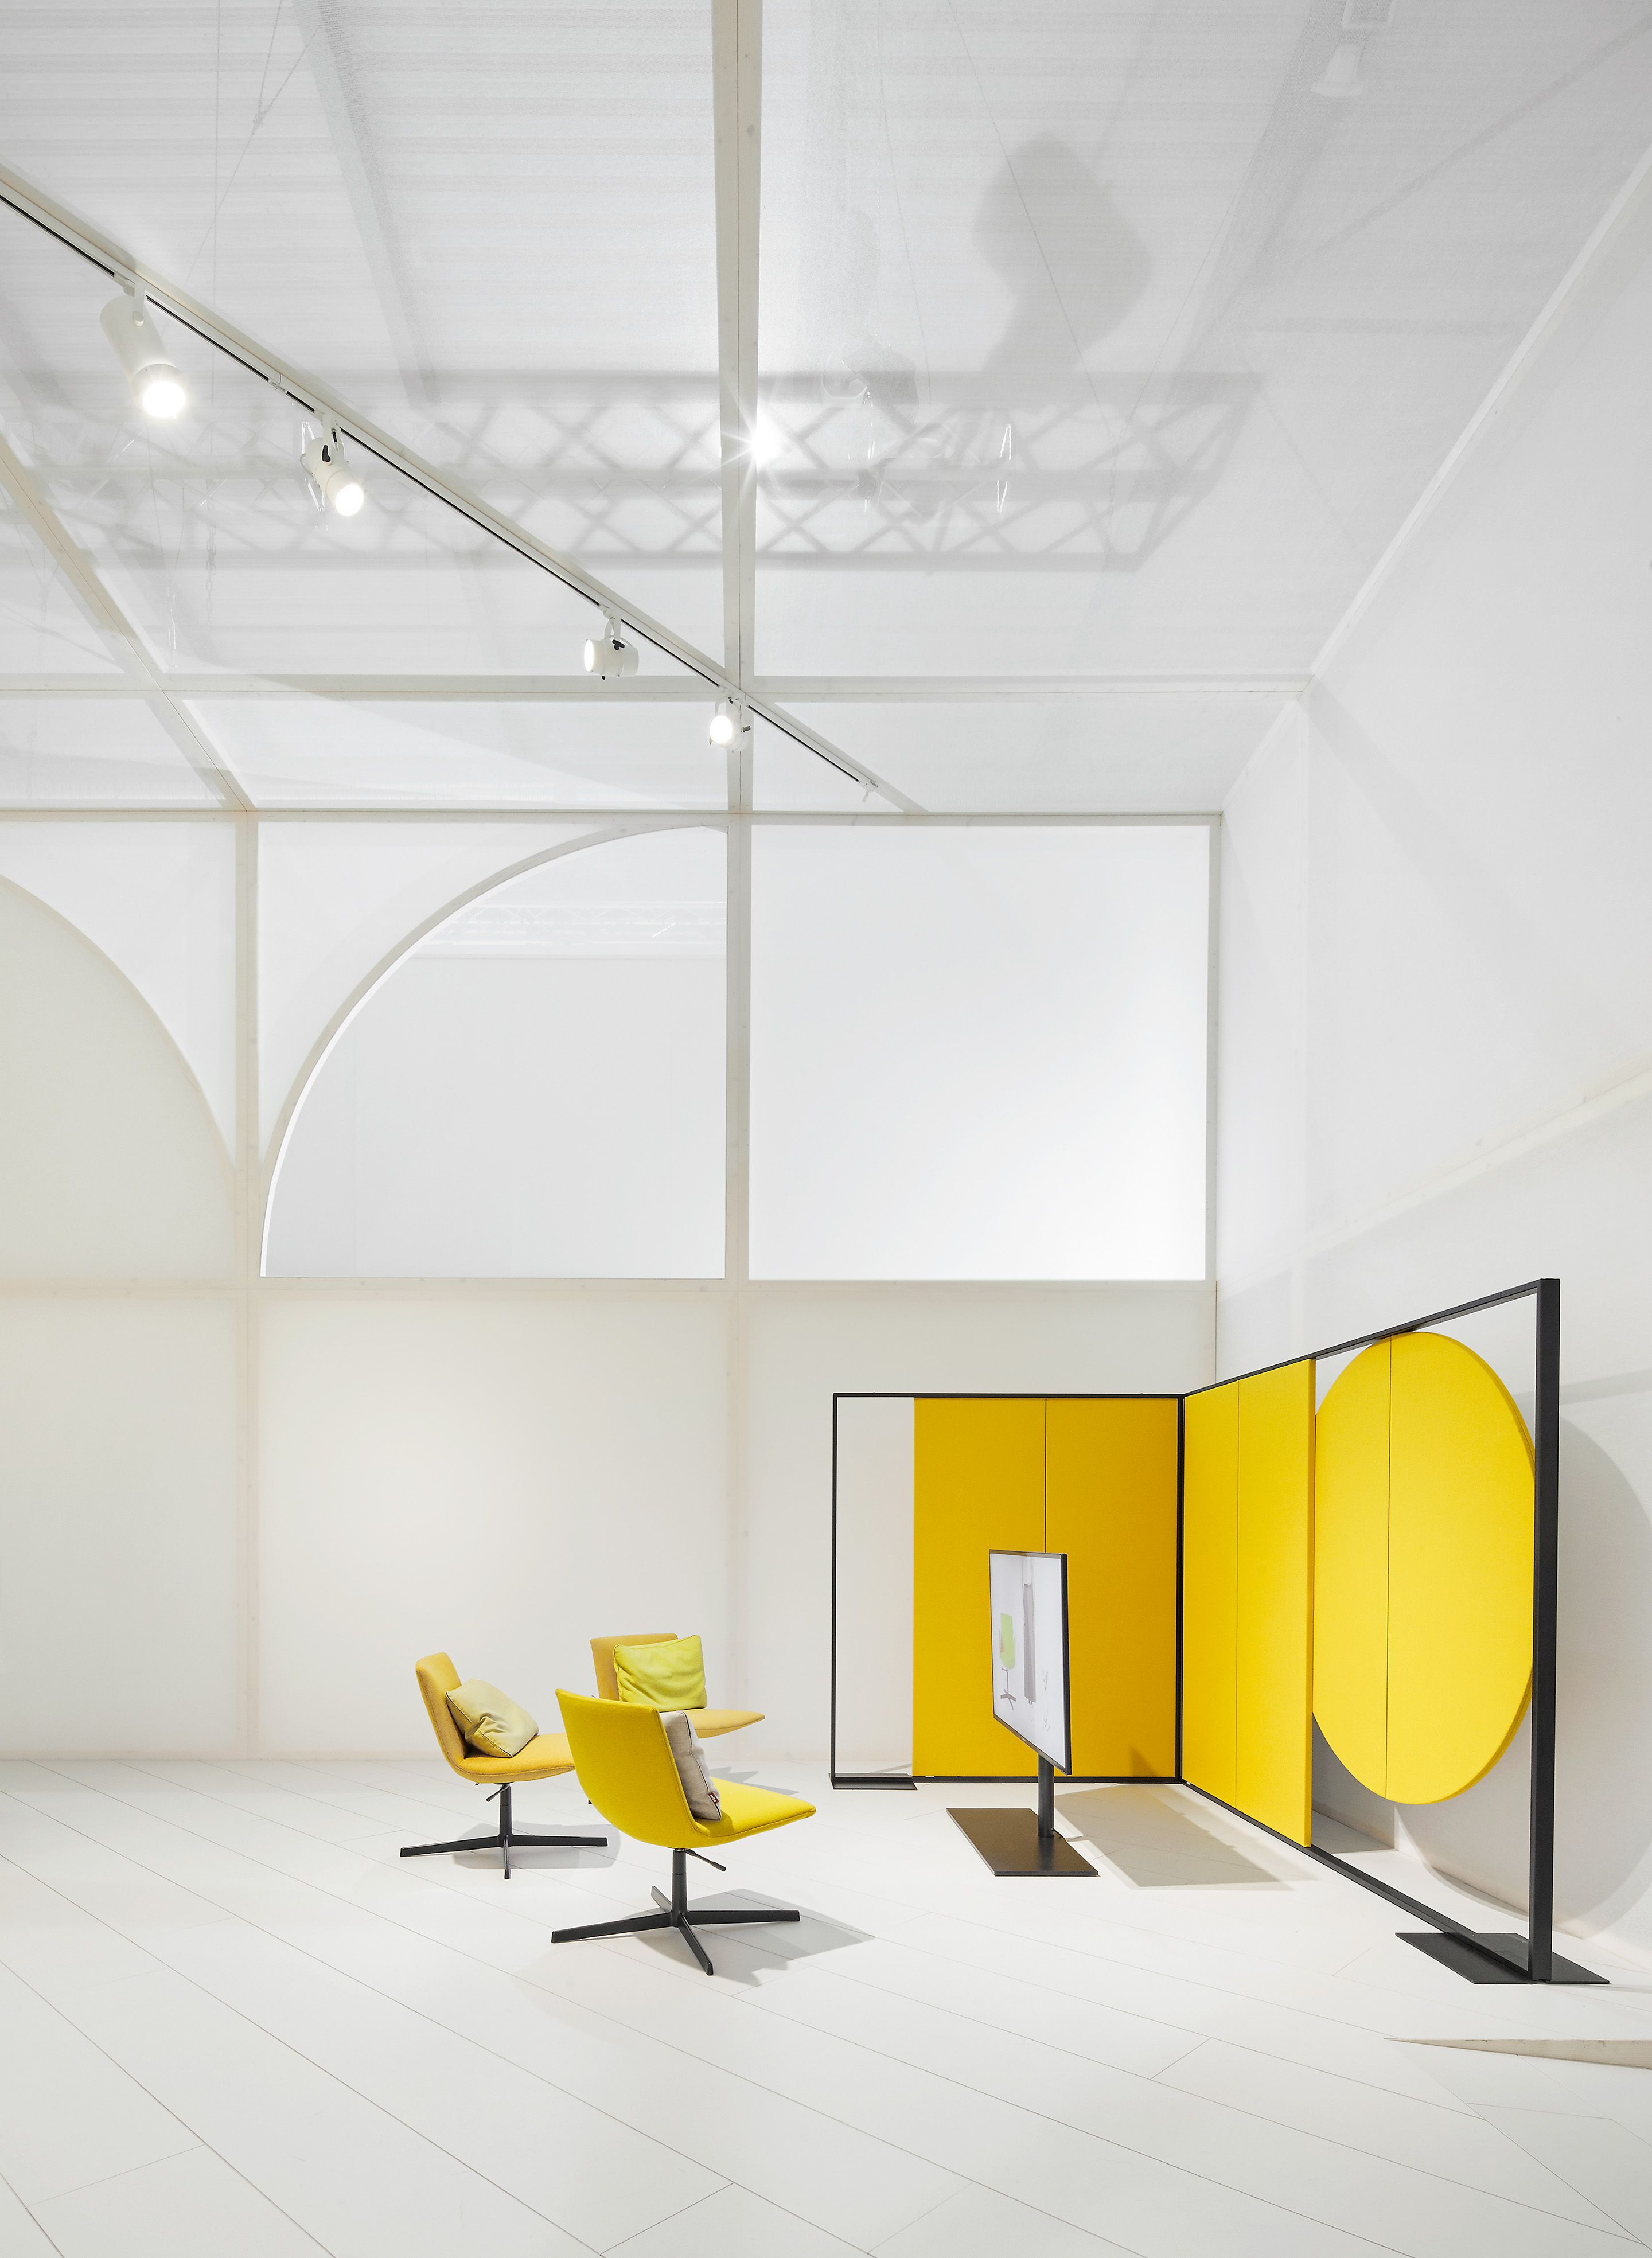 Parentesit in Arper s Workspace booth in Milano architecture Maio architects creative direction Studio Altherr